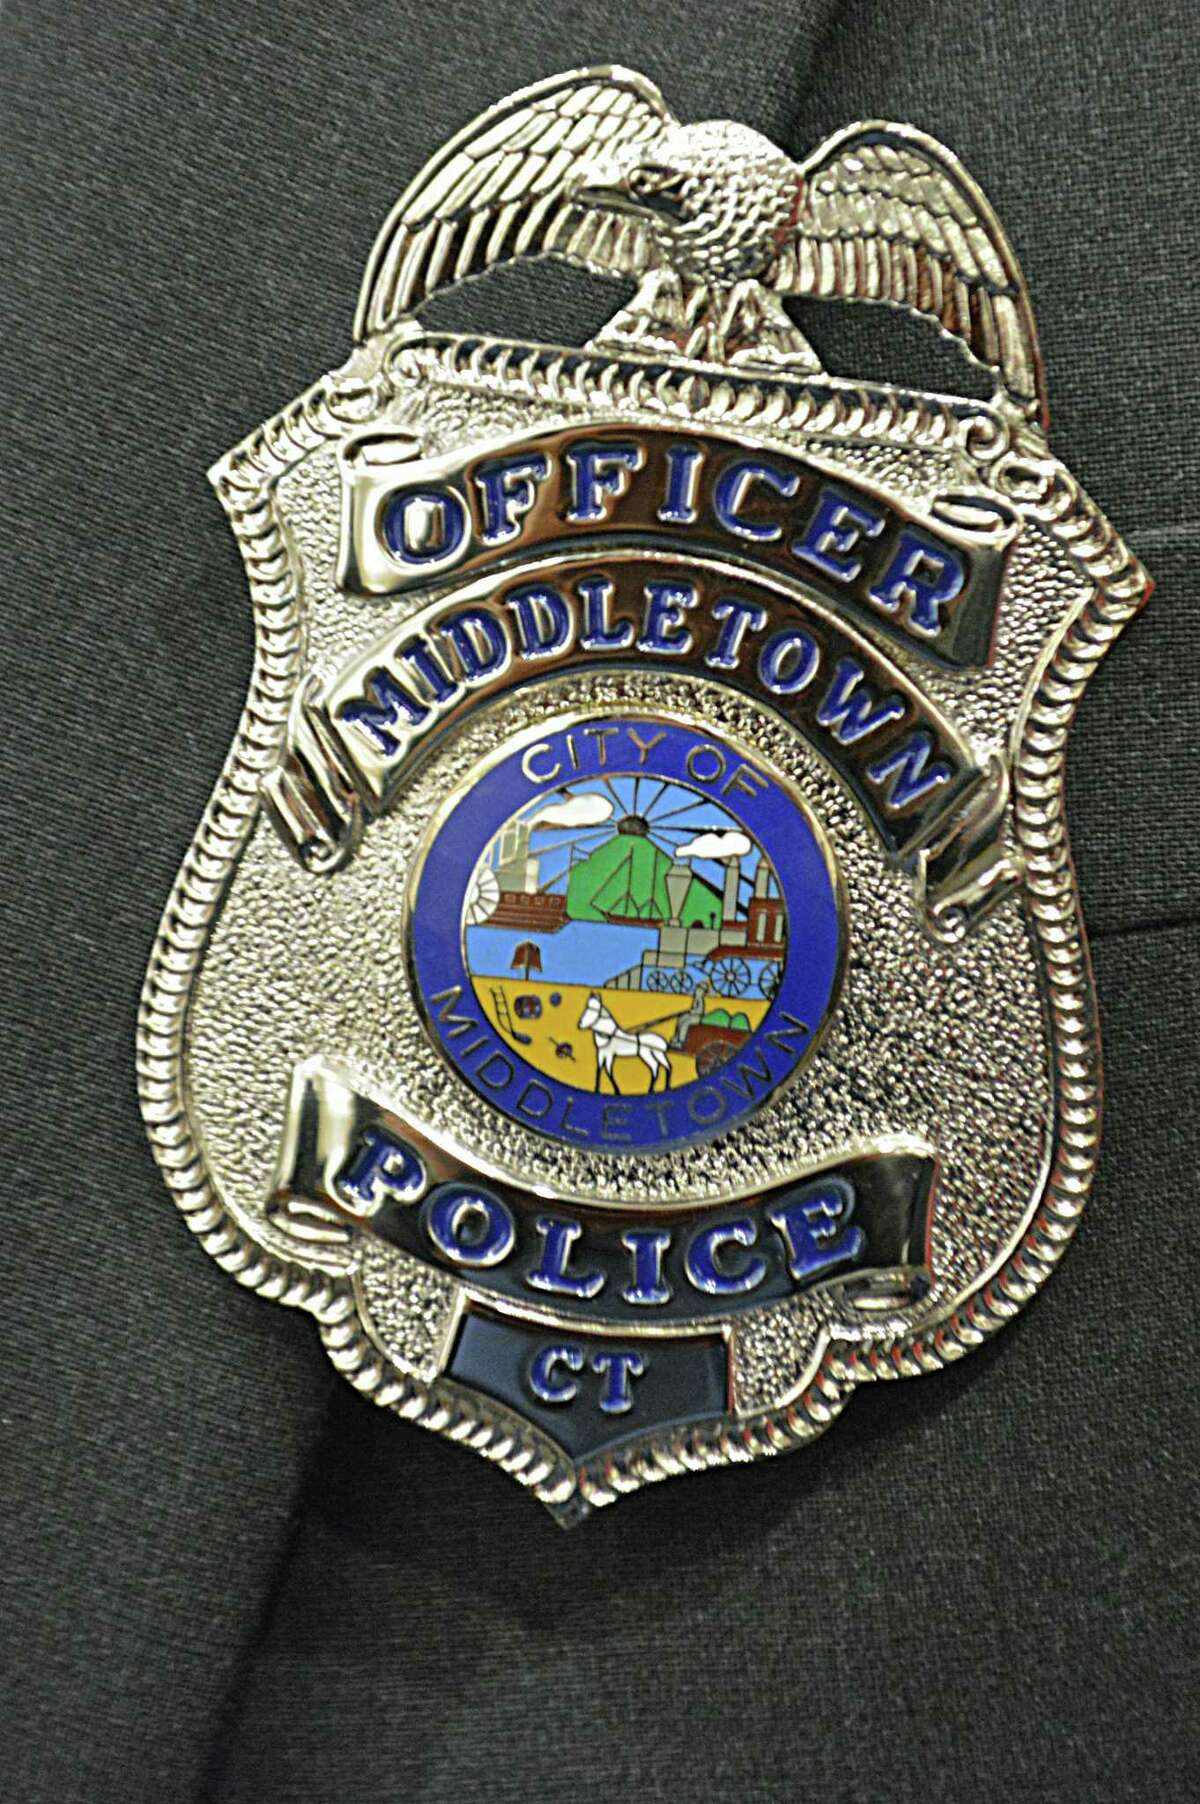 The Middletown Police Department is now up to 112 law enforcement officers after three took the oath of office Friday afternoon in Council Chambers.